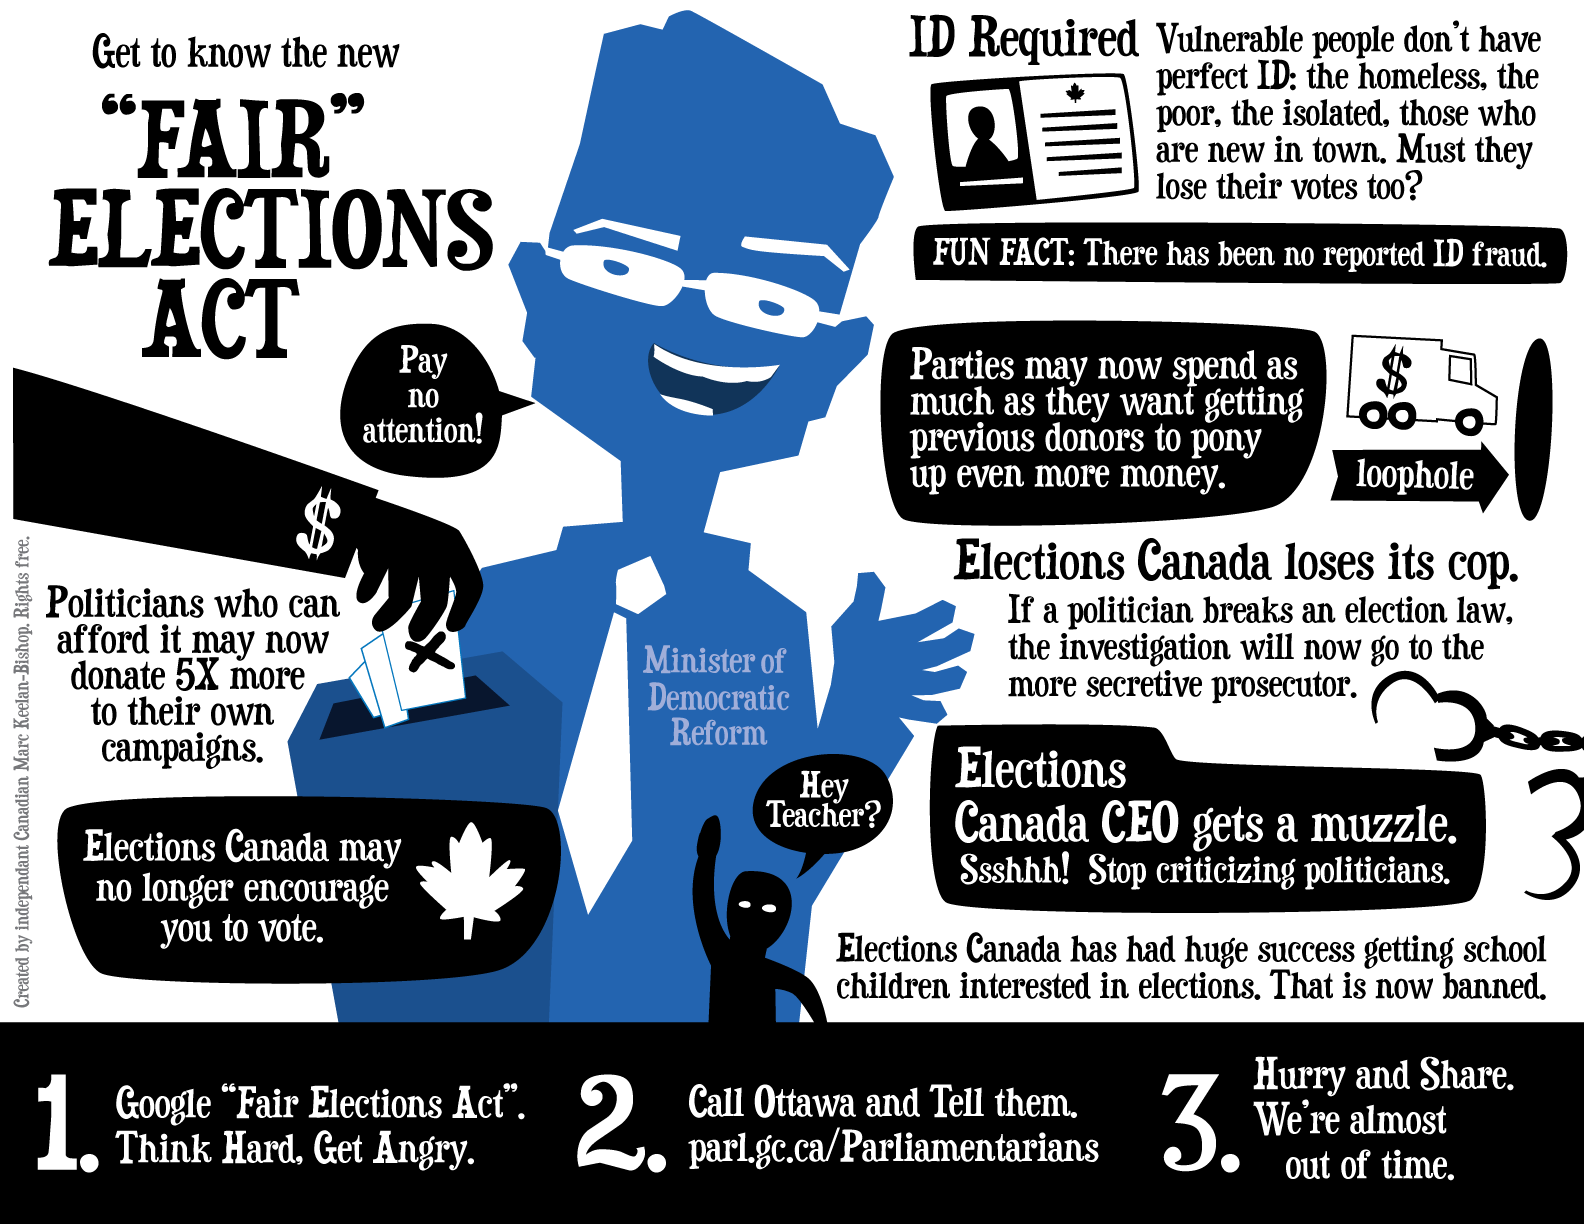 FairElectionsAct2